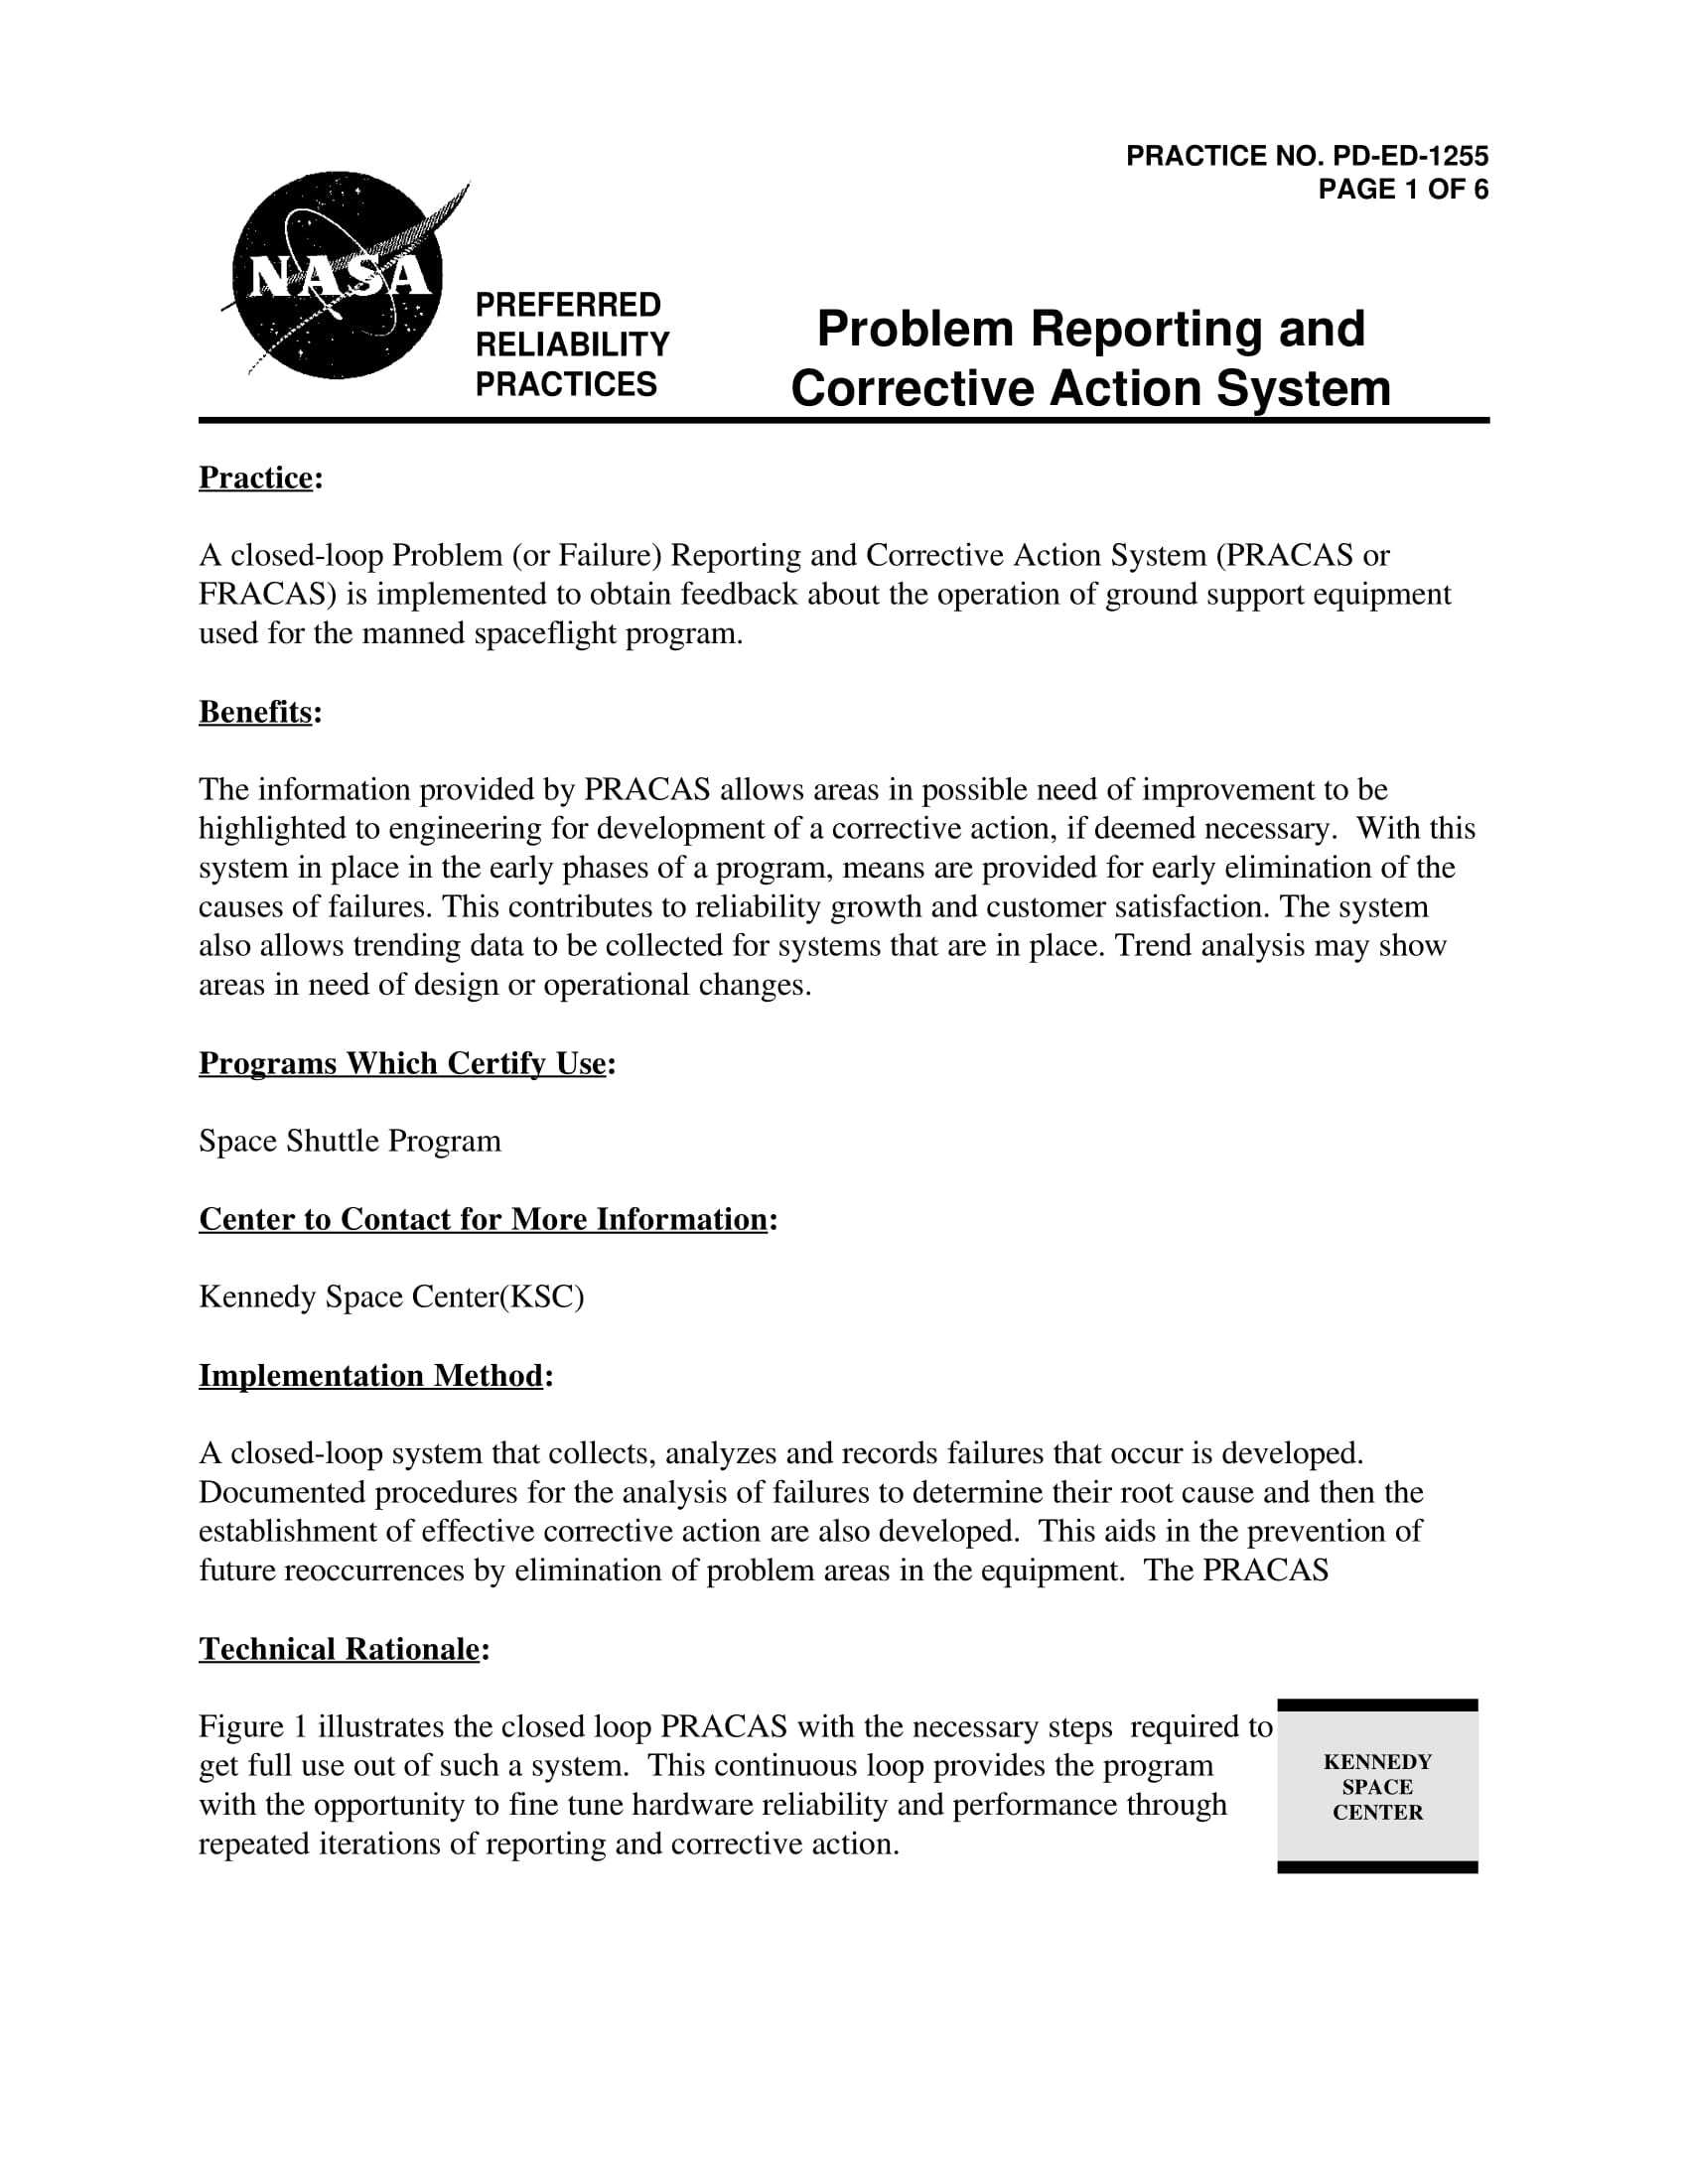 12+ Corrective Action Report Examples - Pdf | Examples within Fracas Report Template